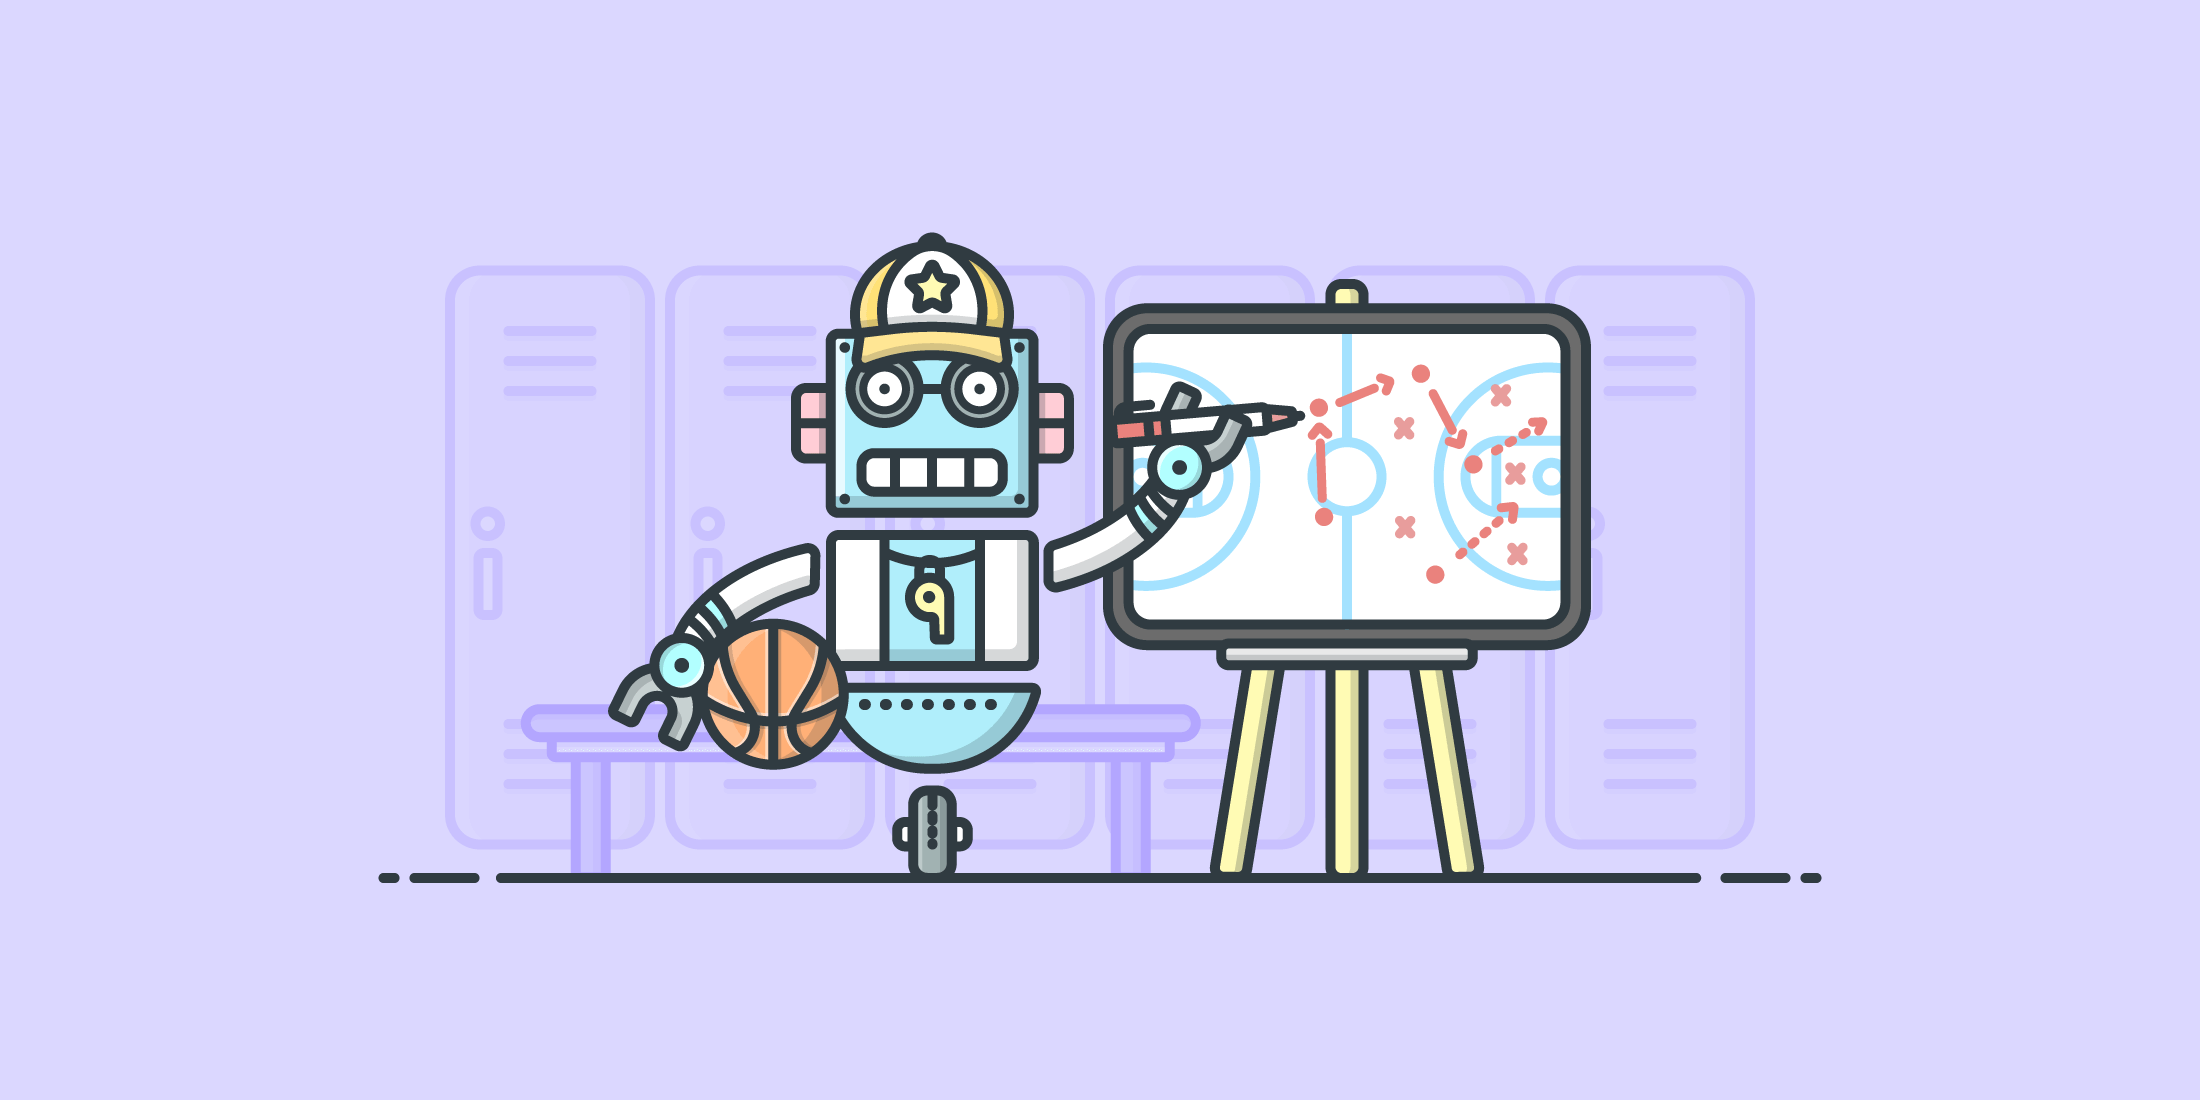 Illustration of a robot painting